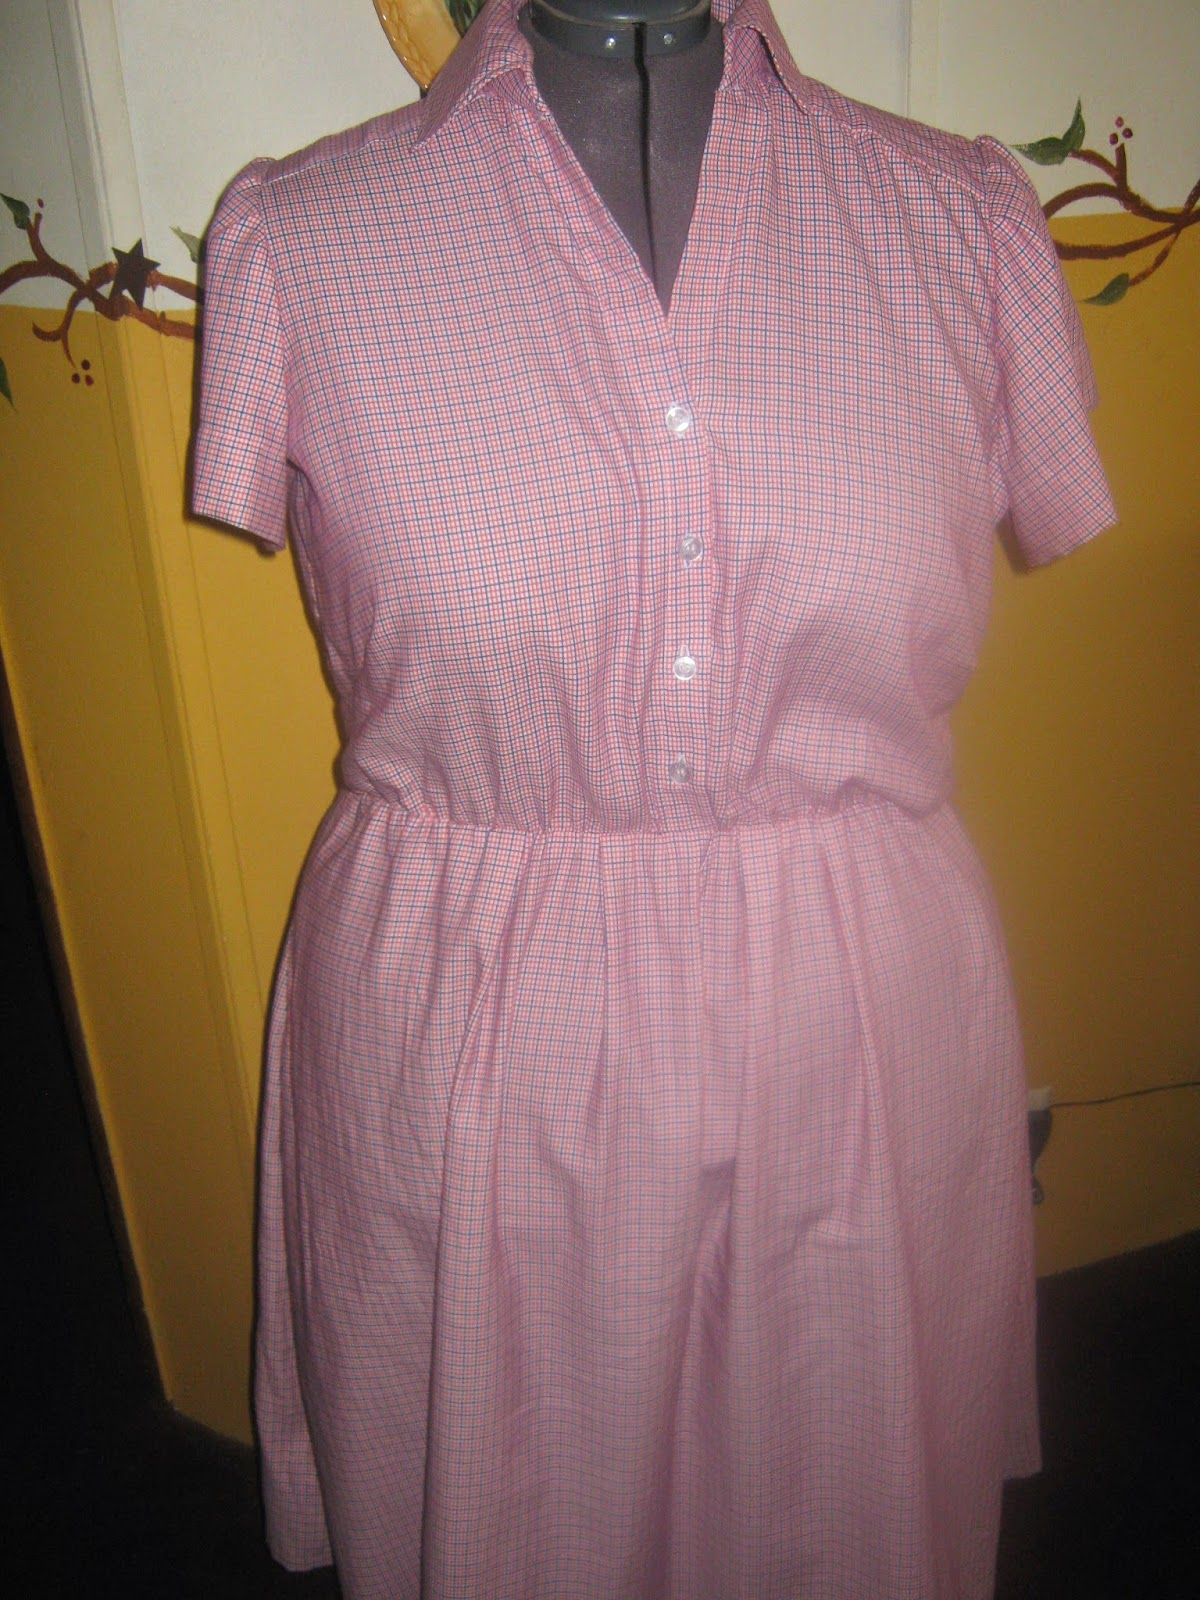 New Look A6180 Shirt dress front view www.sewplus.blogspot.com